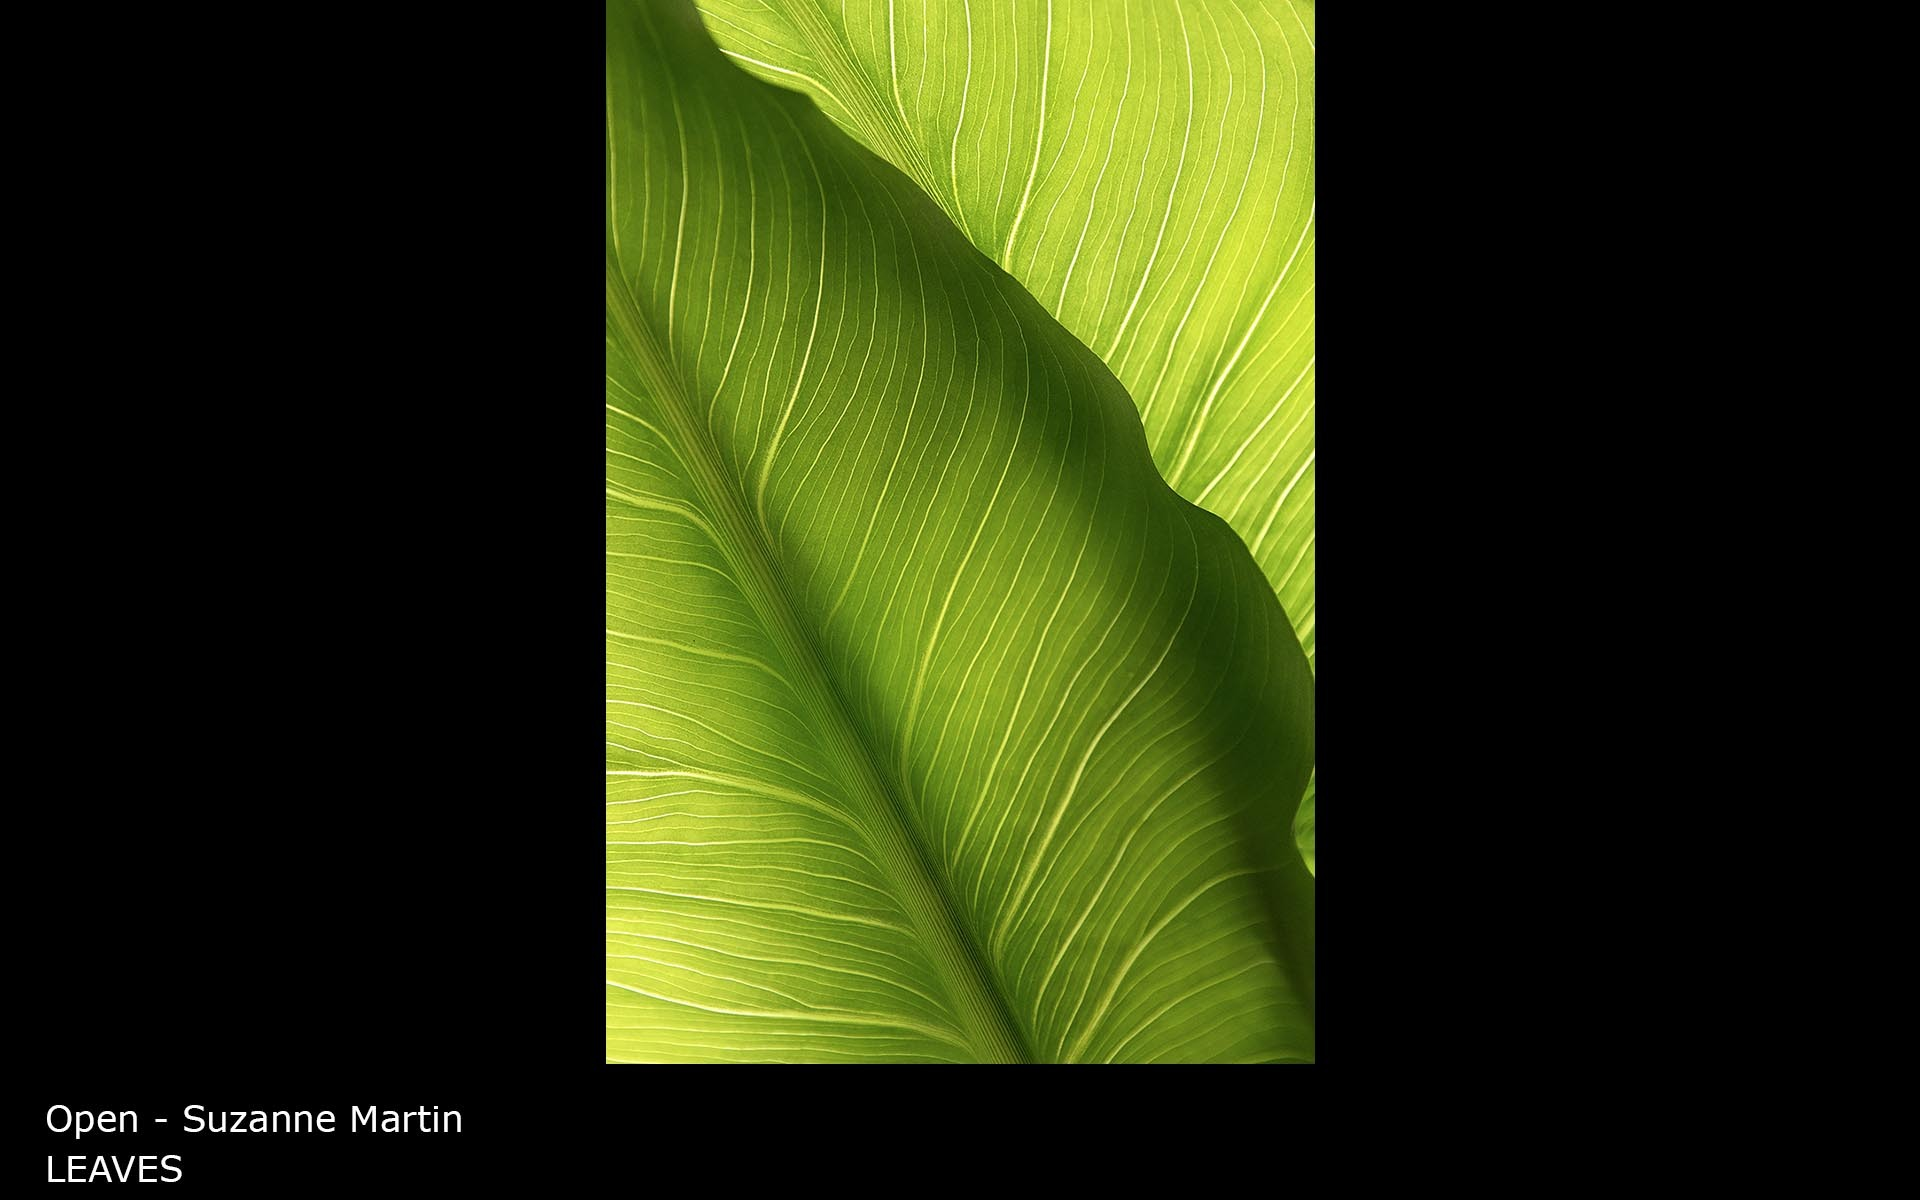 LEAVES - Suzanne Martin